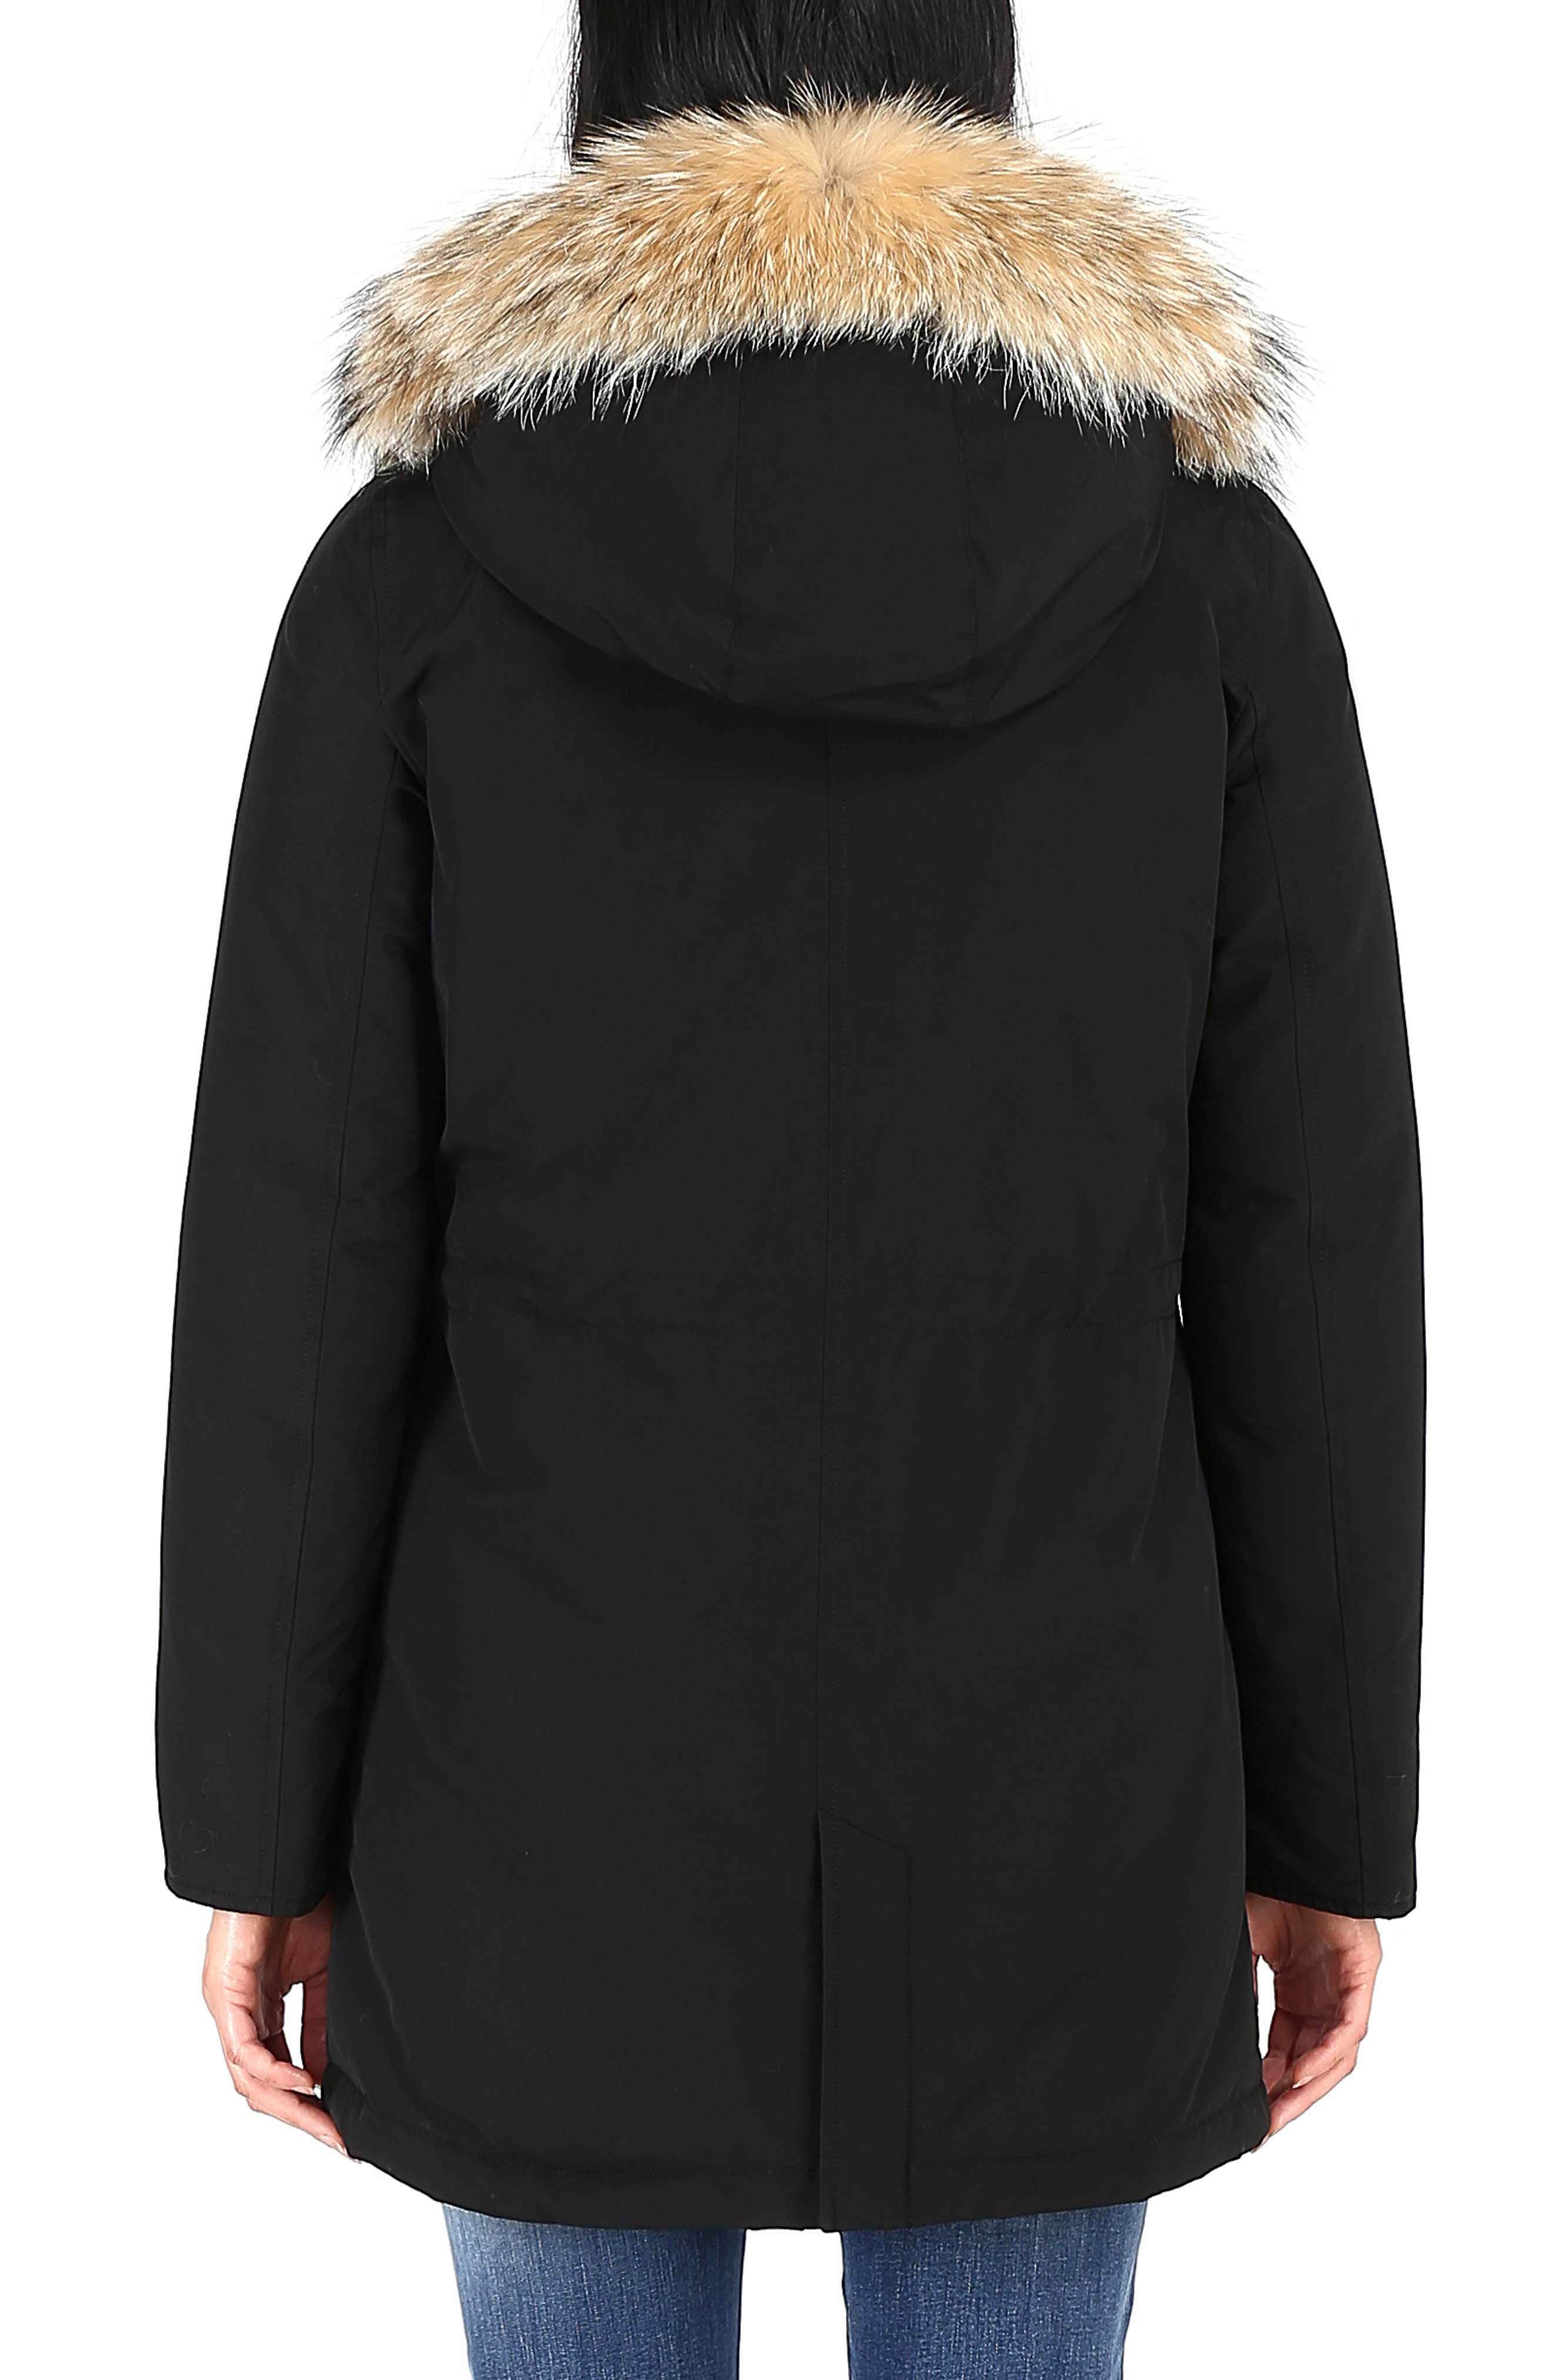 High Collar Arctic Down Parka with Genuine Coyote Fur Trim,                             Alternate thumbnail 2, color,                             BLACK